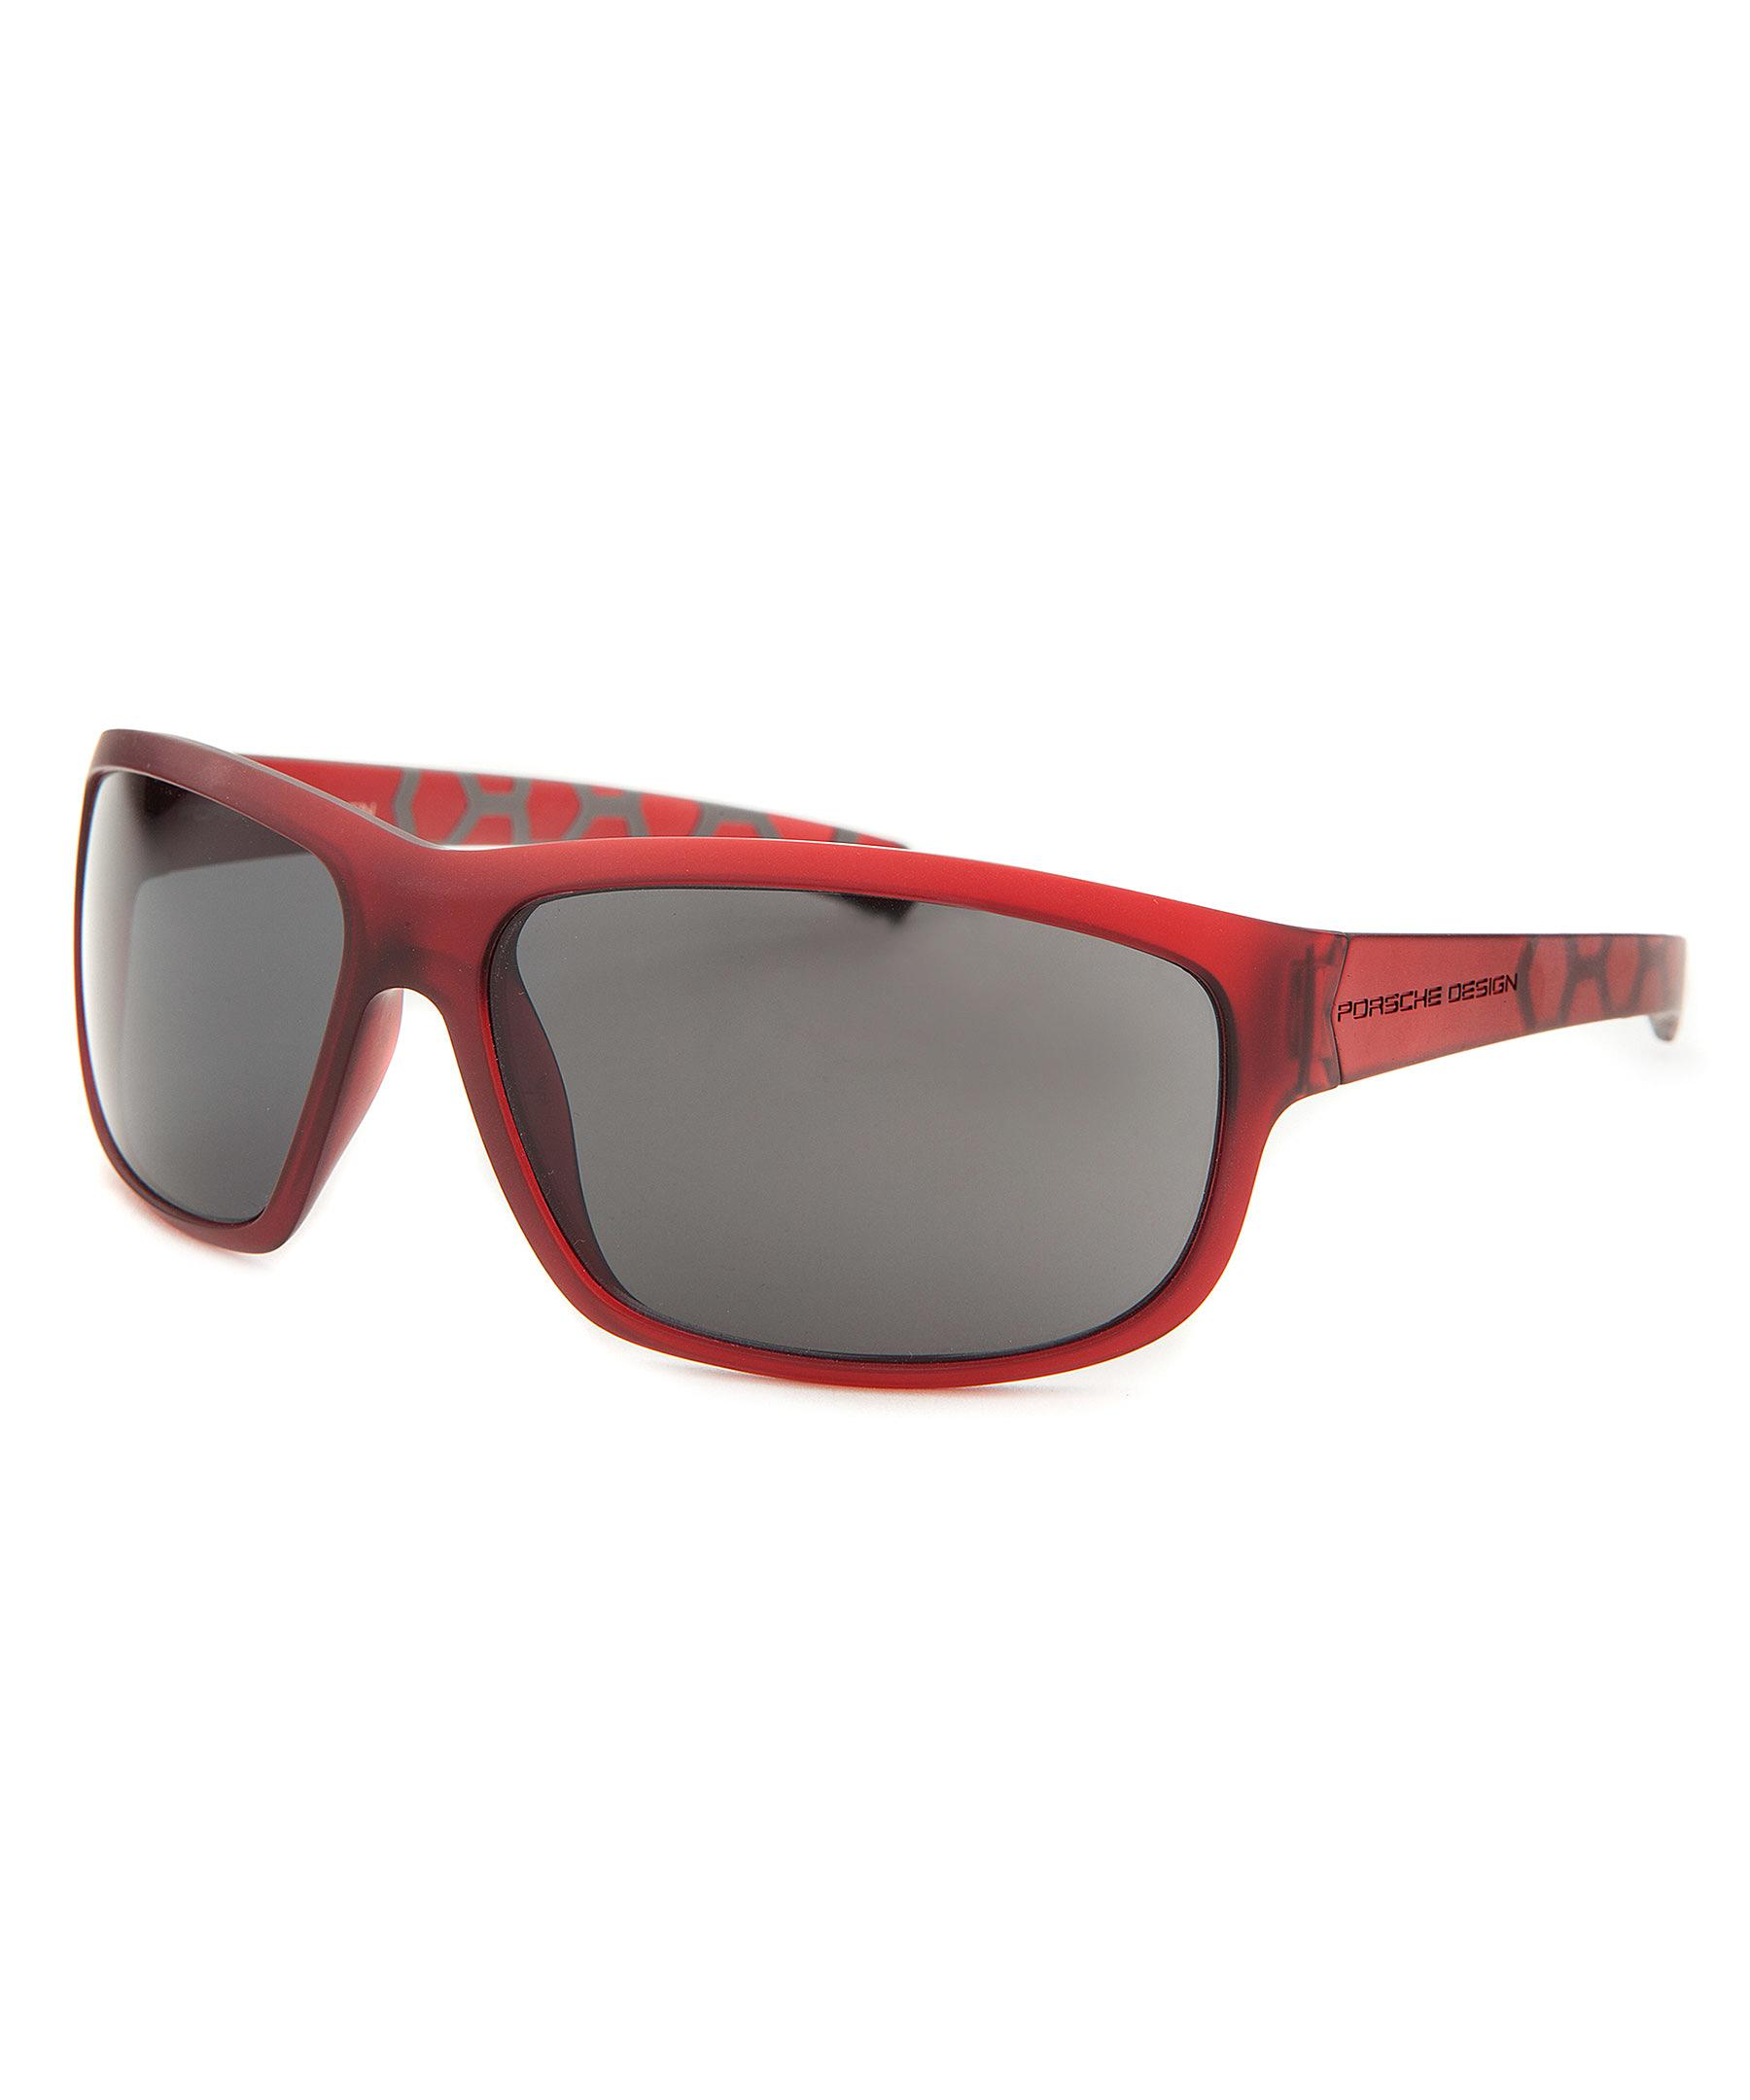 Porsche Design Men S Rectangle Red Sunglasses In Red For